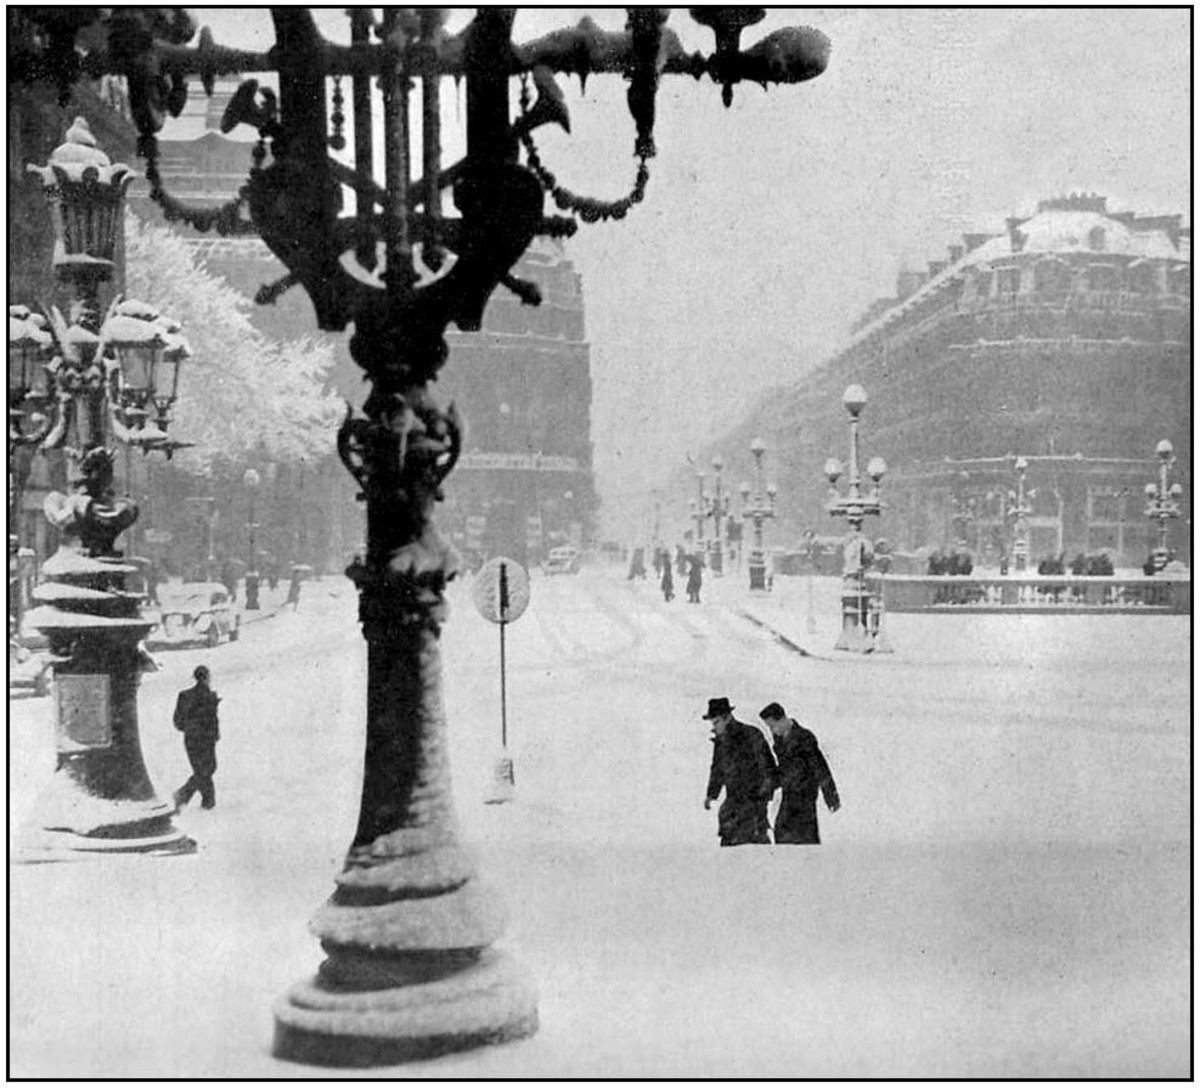 February 3rd 1941. Place de l'Opera seen from the steps of the Palais Garnier, Paris Opera House